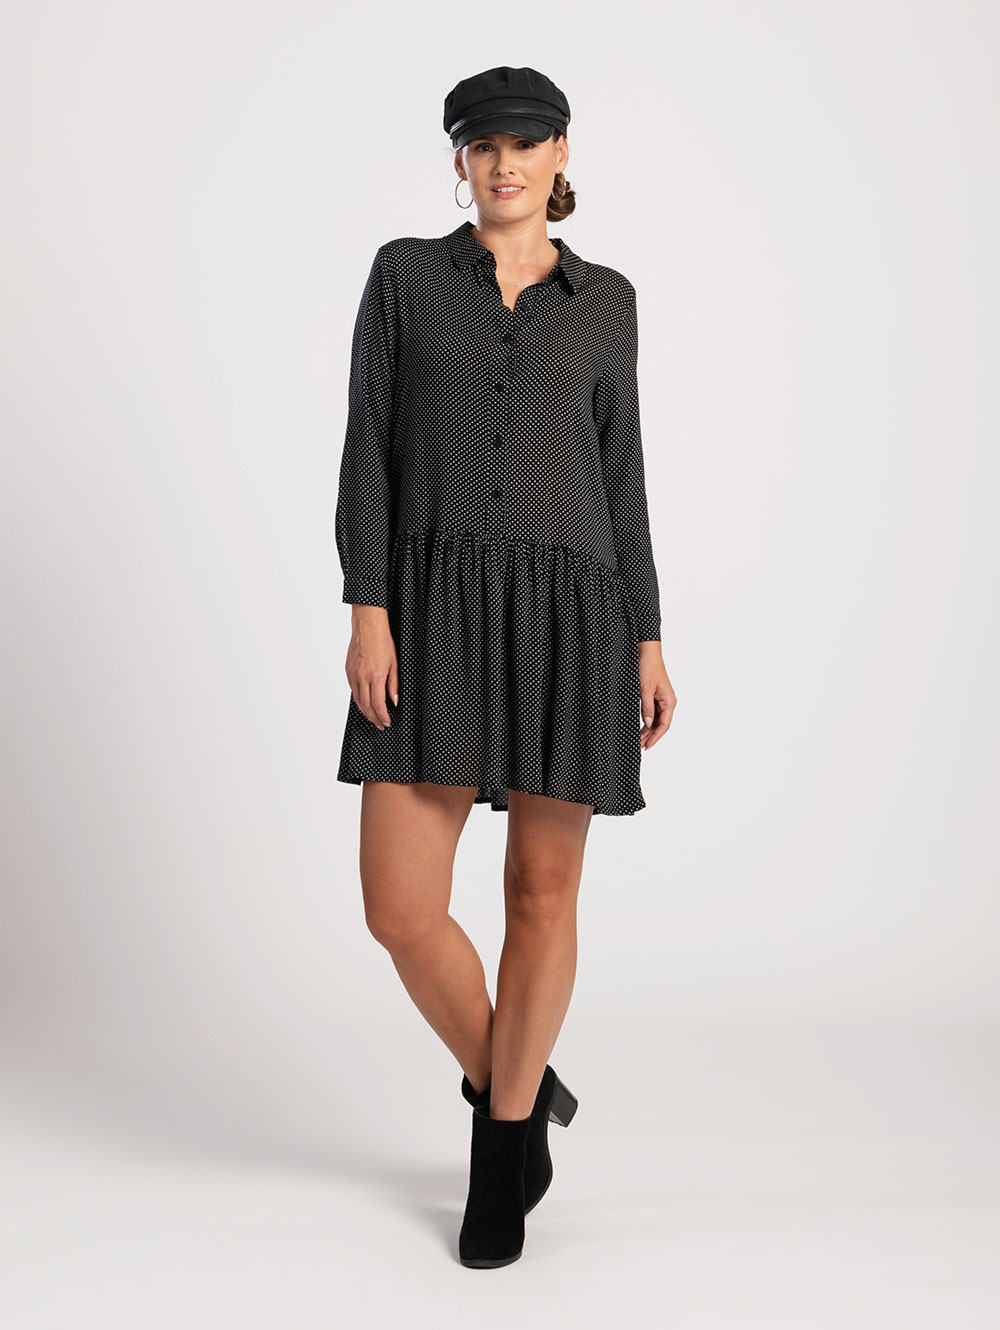 Shirt Dress in Black Polka Dot